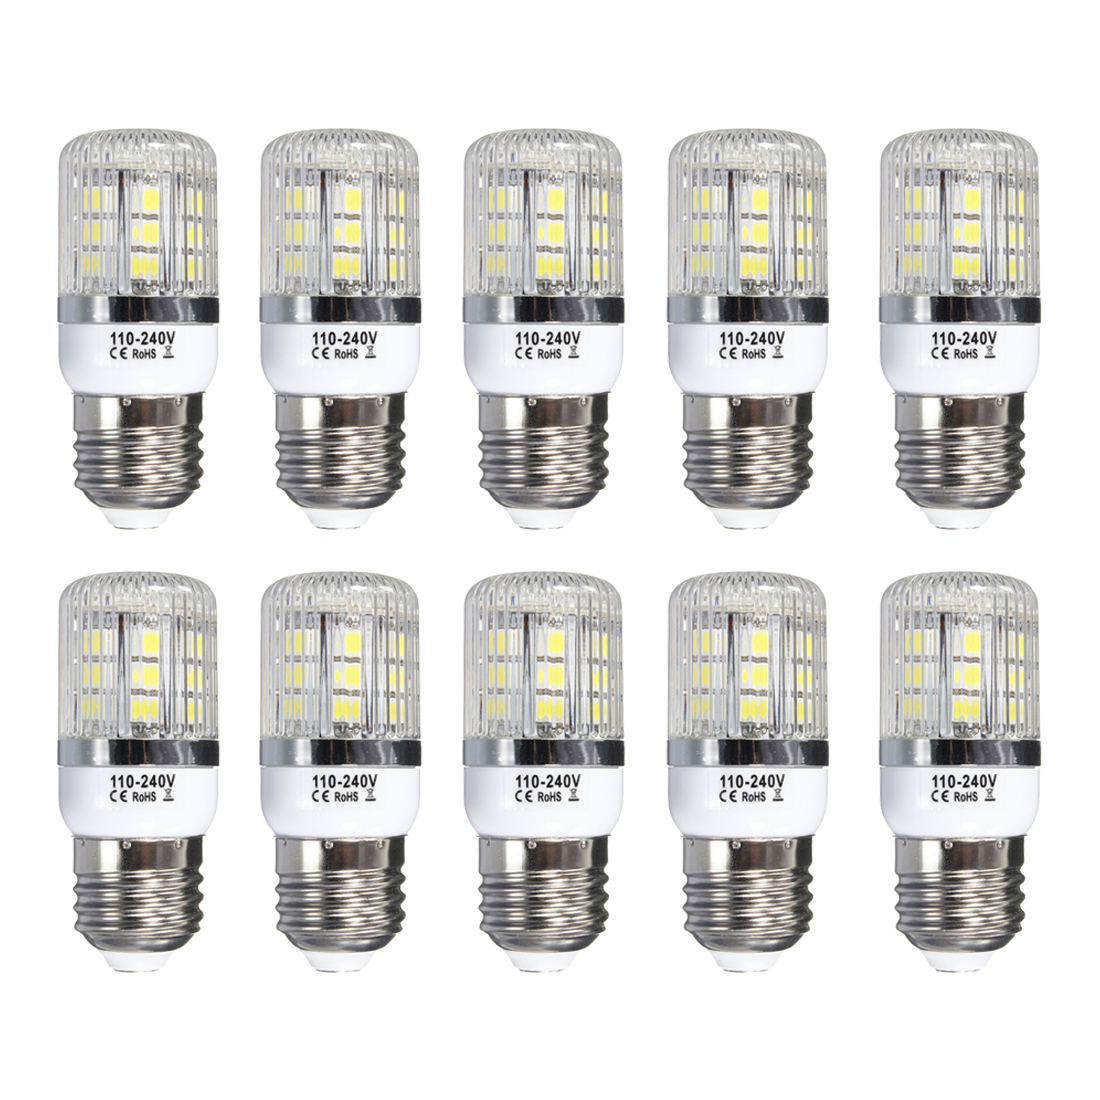 E27 5W Dimmable 27 SMD 5050 LED Corn Light Bulb Lamp Base Type:E27-5W Warm White(3000-3500K) Amount:10 Pcs 5pcs e27 led bulb 2w 4w 6w vintage cold white warm white edison lamp g45 led filament decorative bulb ac 220v 240v